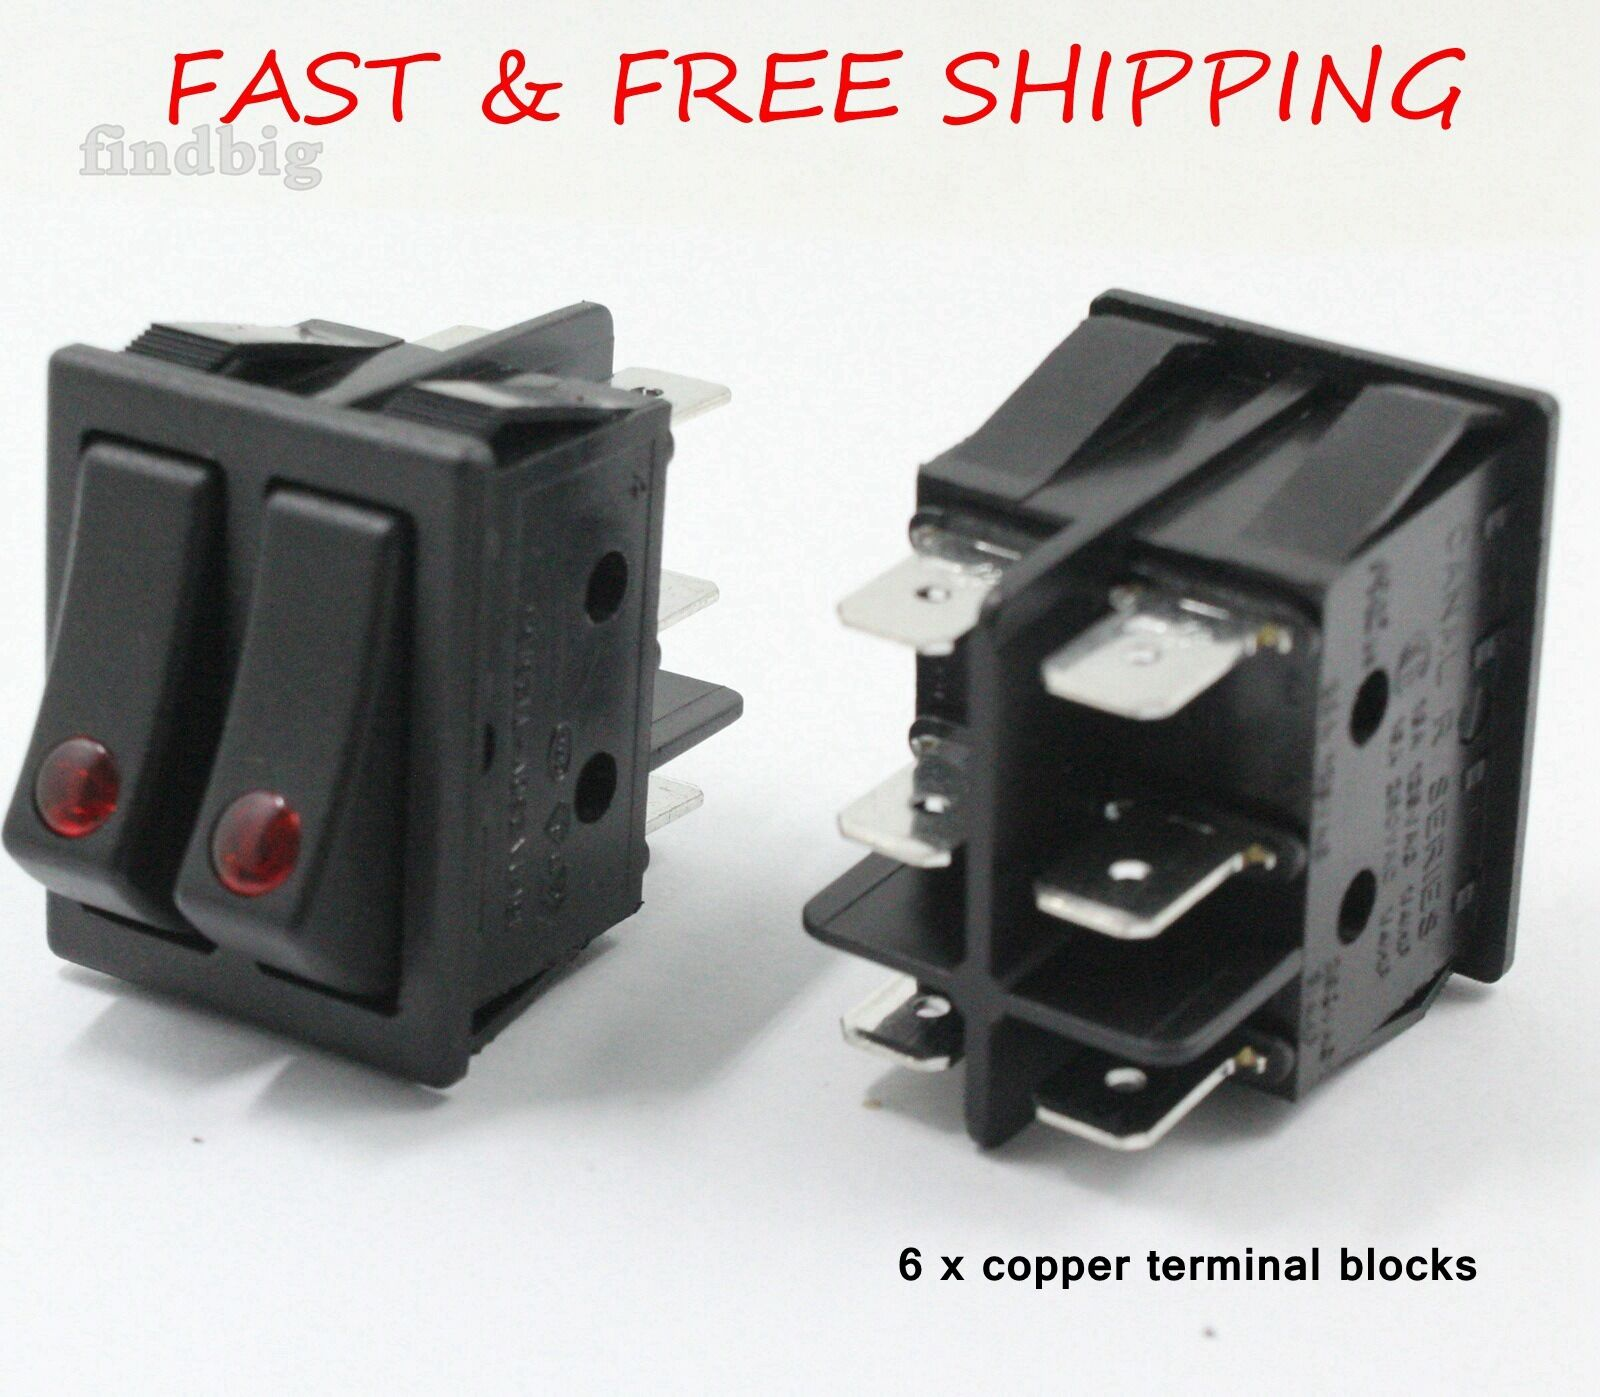 Canal Série R Rocker Switch 16 A//250 V T85//55 ON OFF ON UL VDE durable NEUF